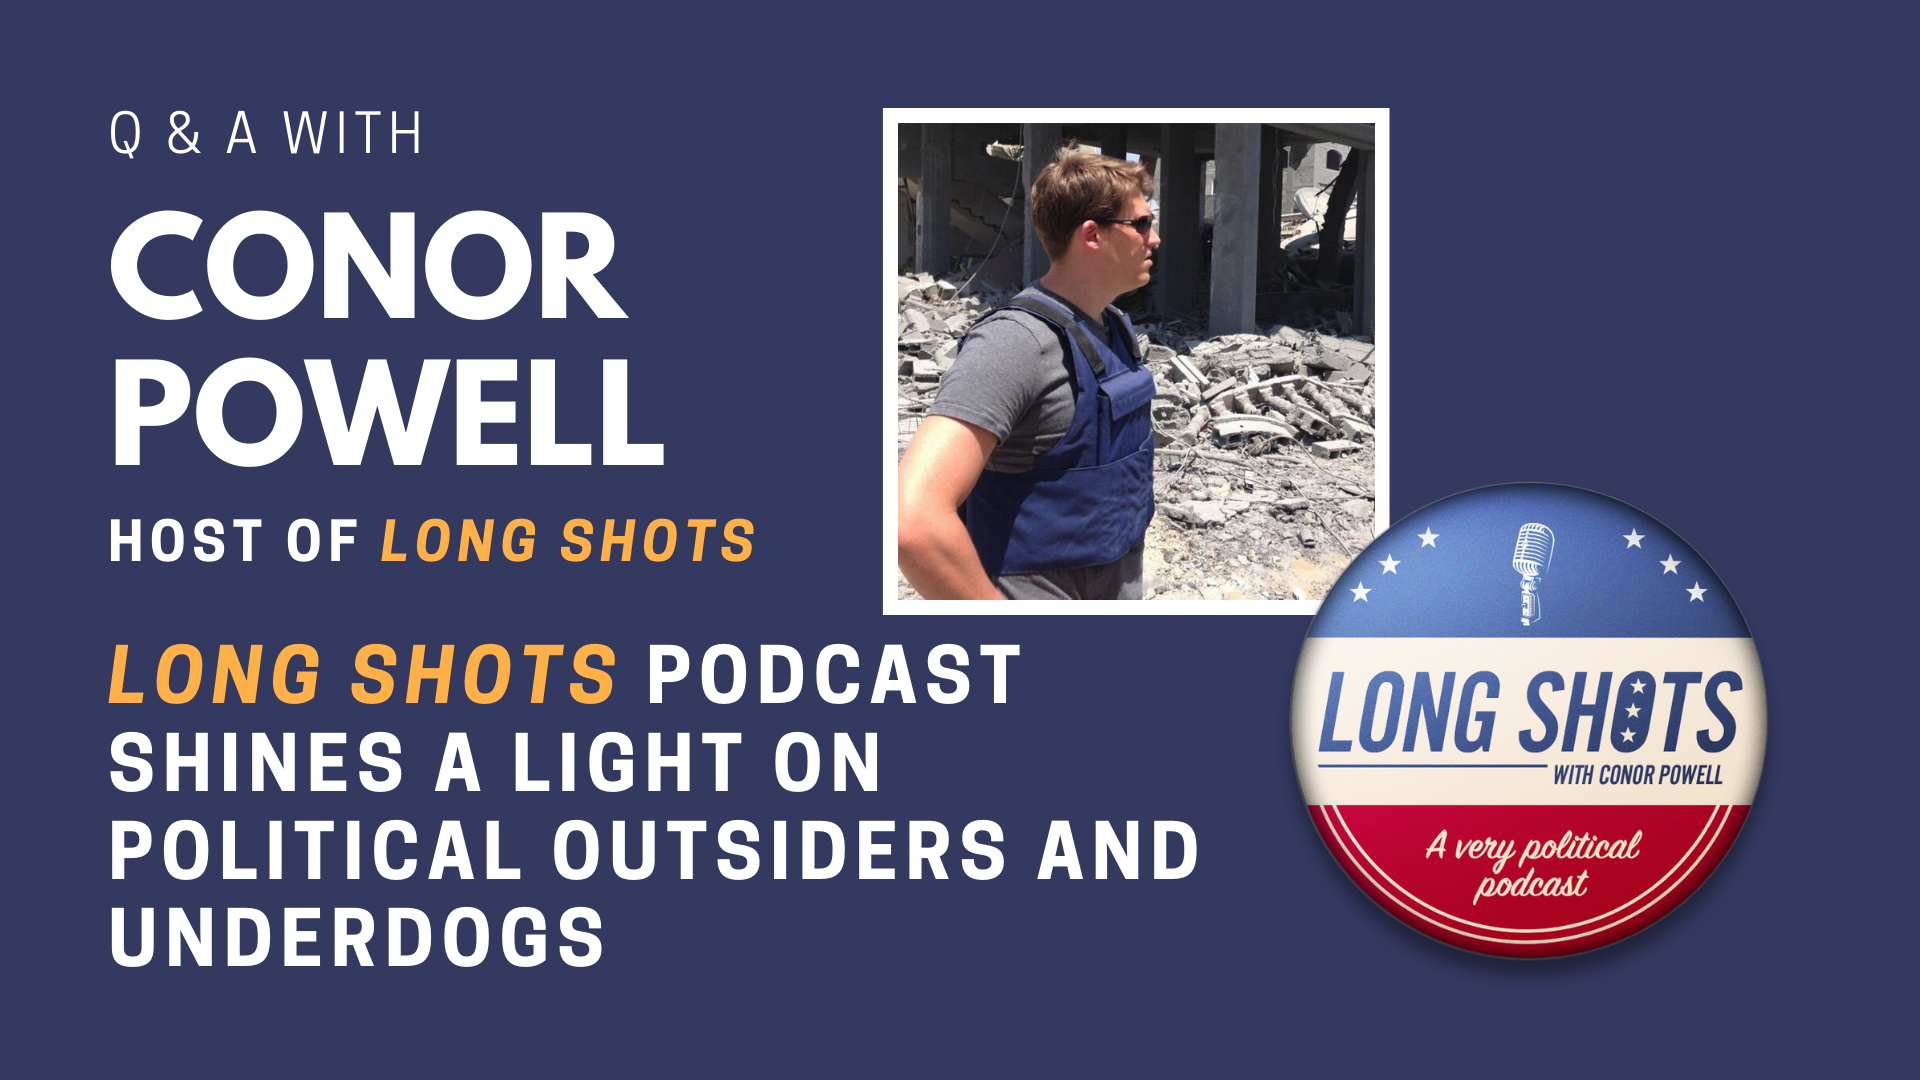 <em>Long Shots</em> shines a light on political outsiders and underdogs